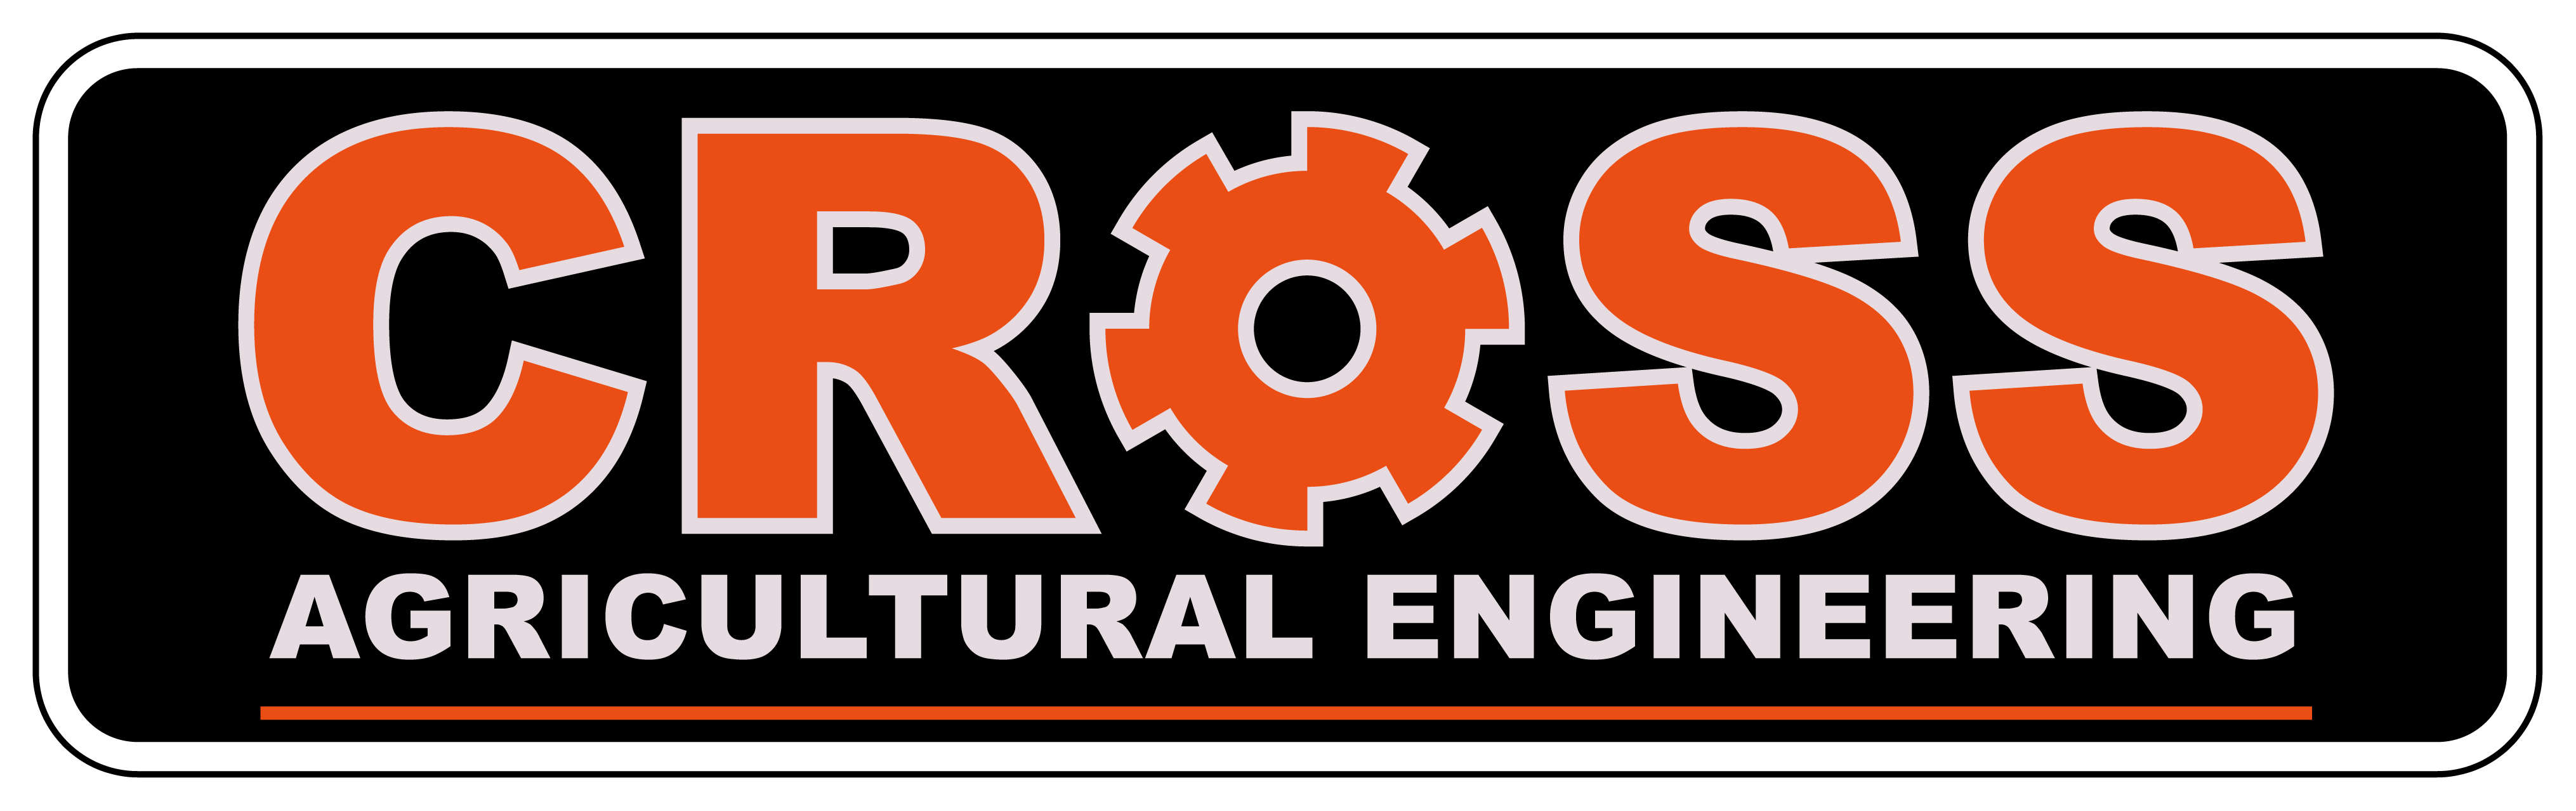 CROSS AGRICULTURAL ENGINEERING